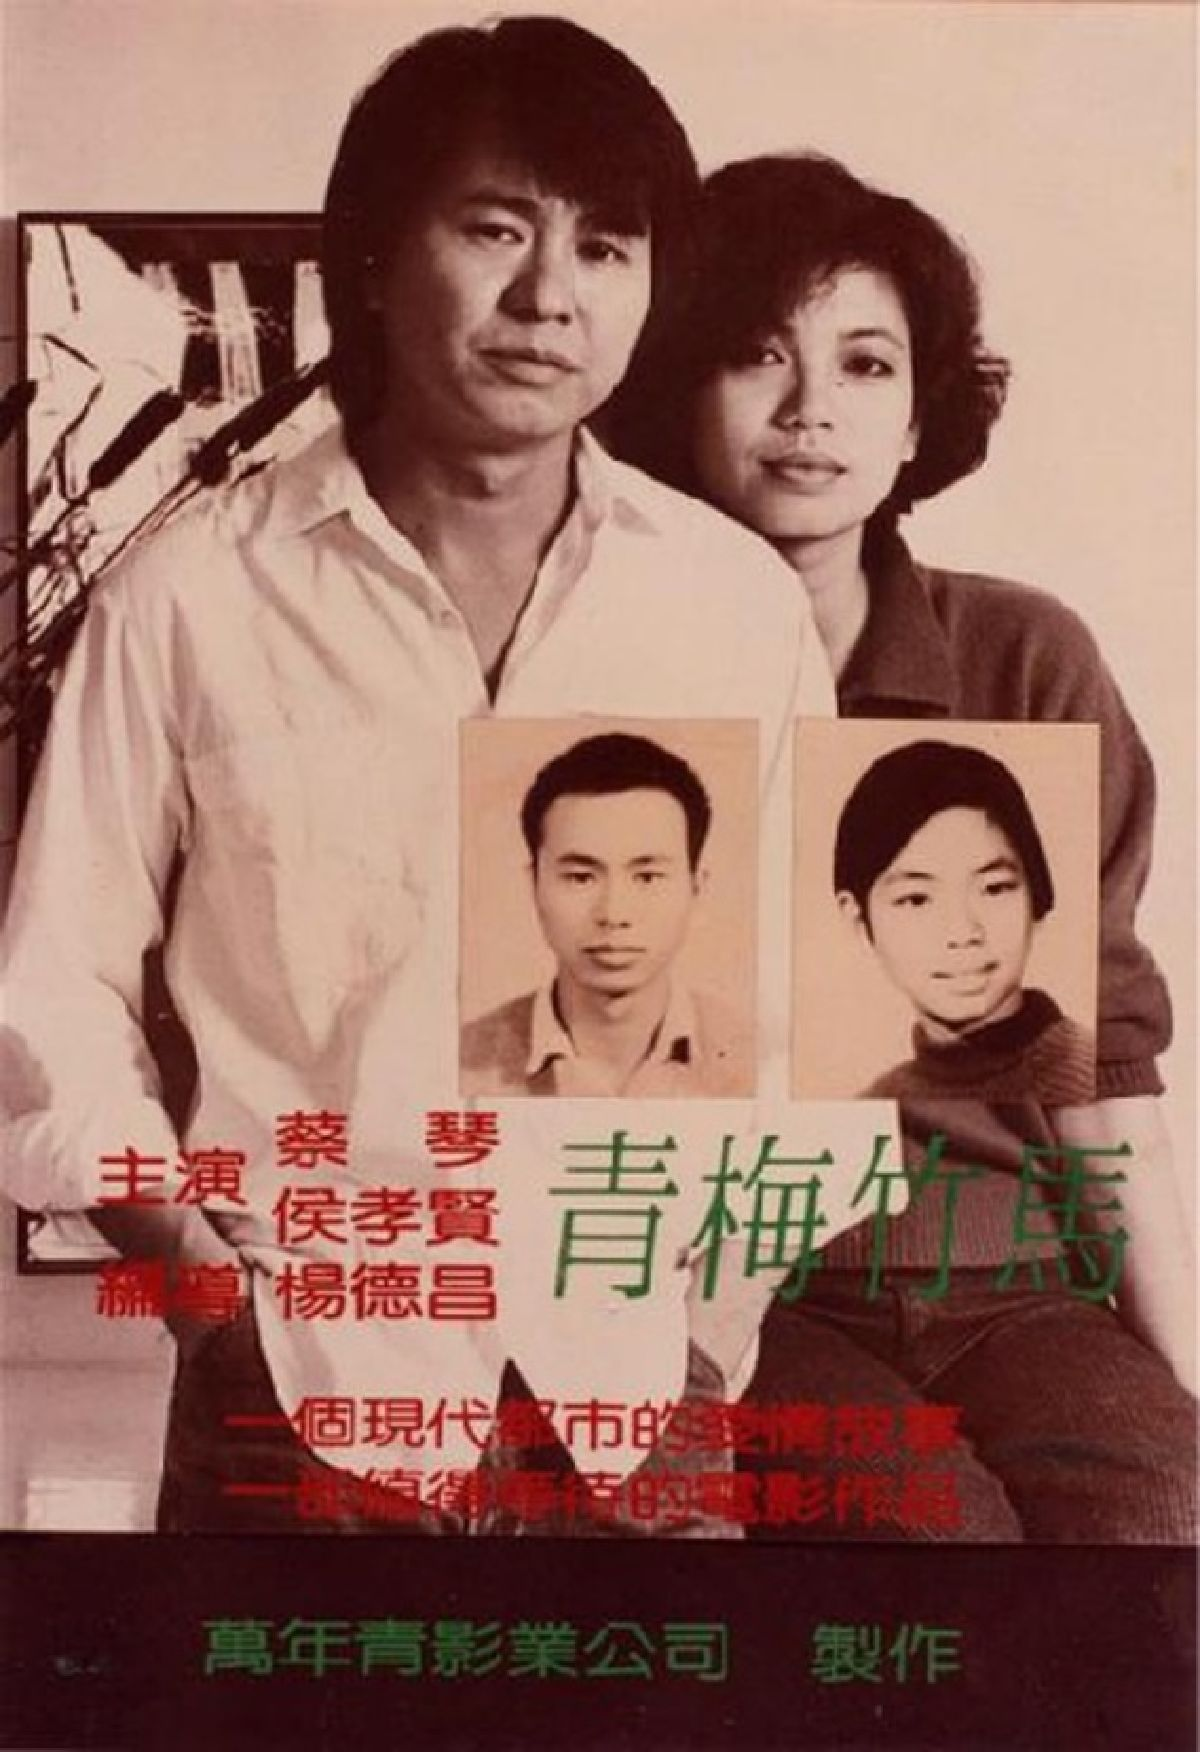 'Taipei Story (Qingmei Zhuma)' movie poster